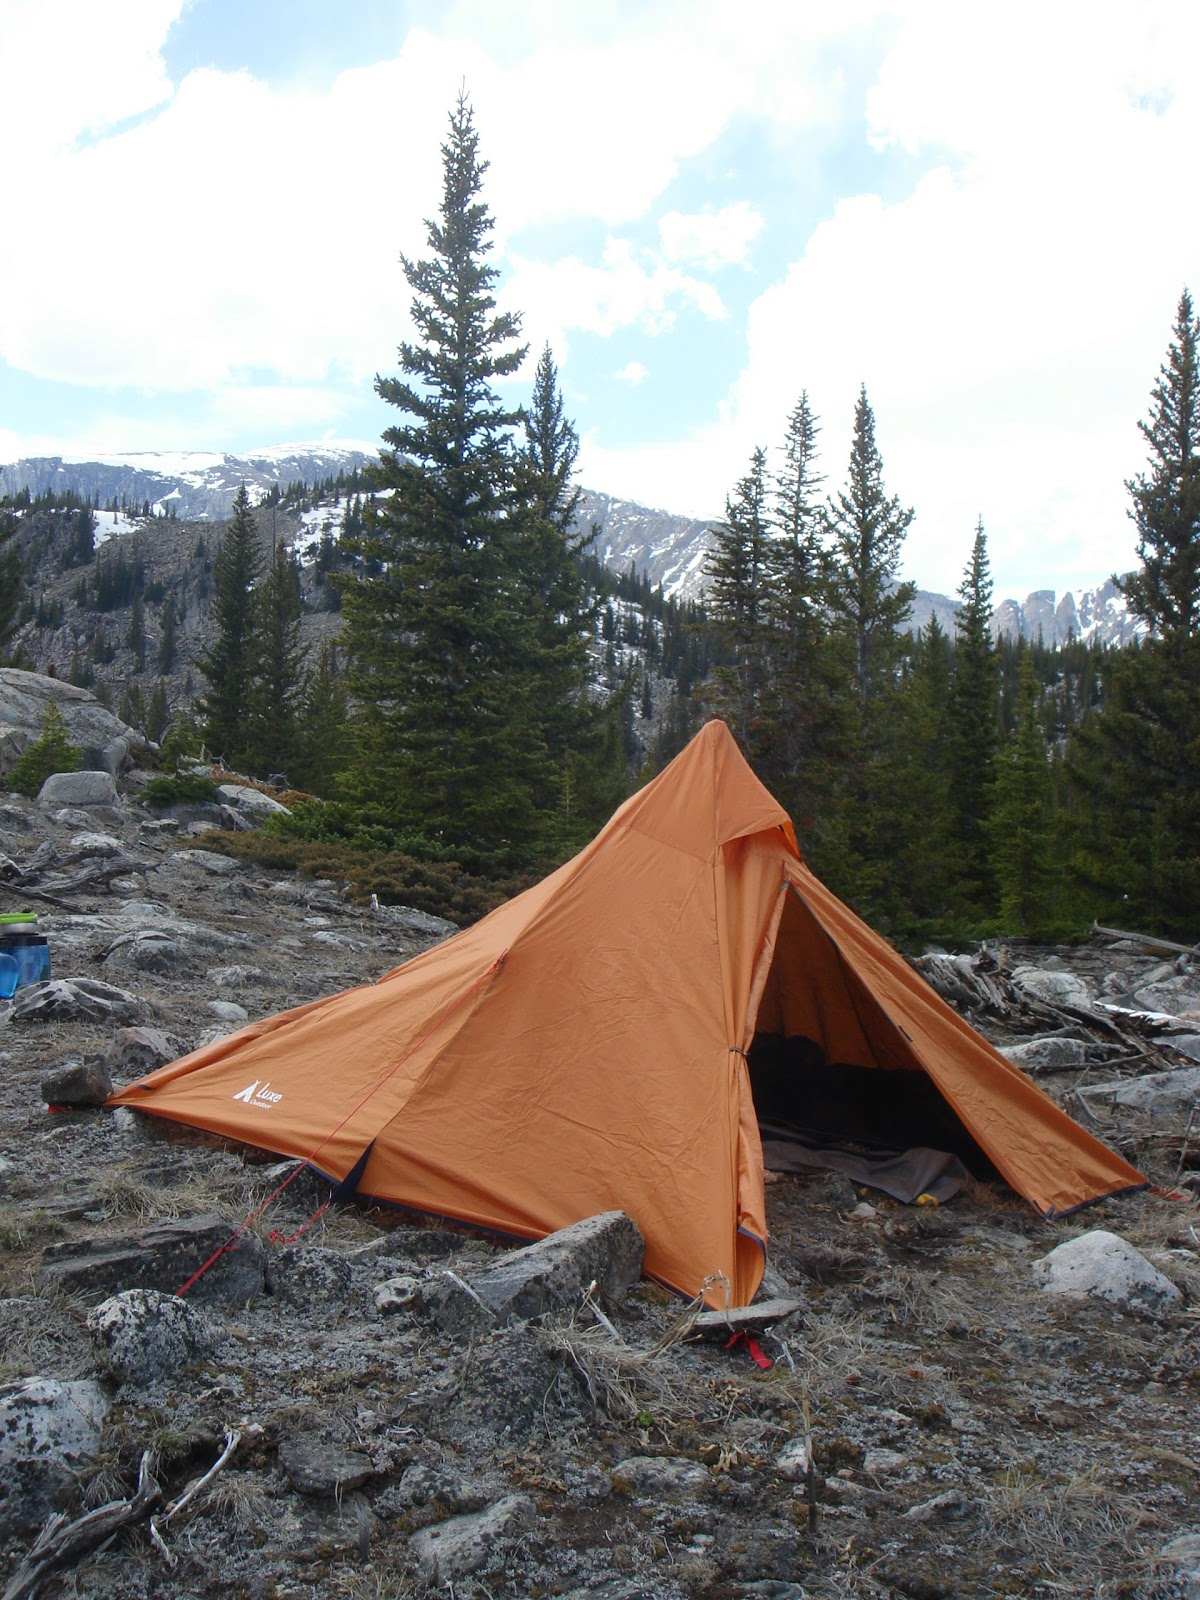 Great 1-2 Man Tent & Luxe Mini Peak 2 Tent - Review |Camp Primitive - Out There Somewhere